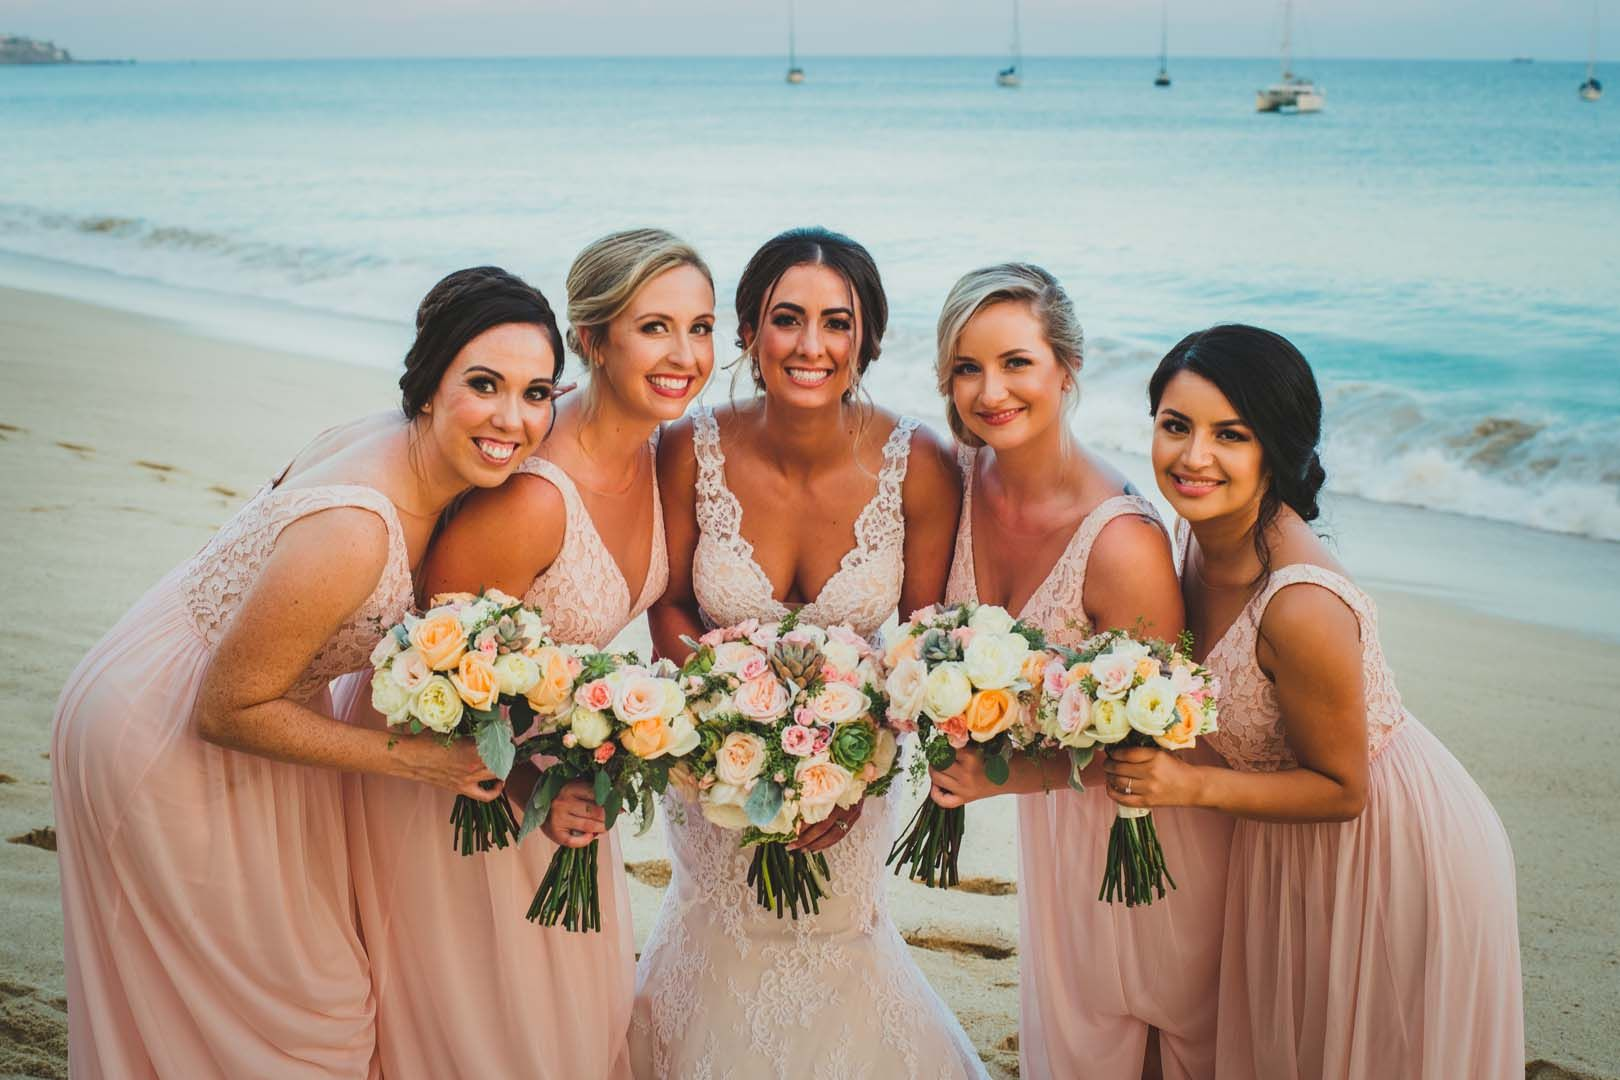 Bride with Bridesmaids in Los Cabos Mexico, during a photo session after her wedding ceremony at the Evangelista church, located downtown Cabo San Lucas, Mexico.